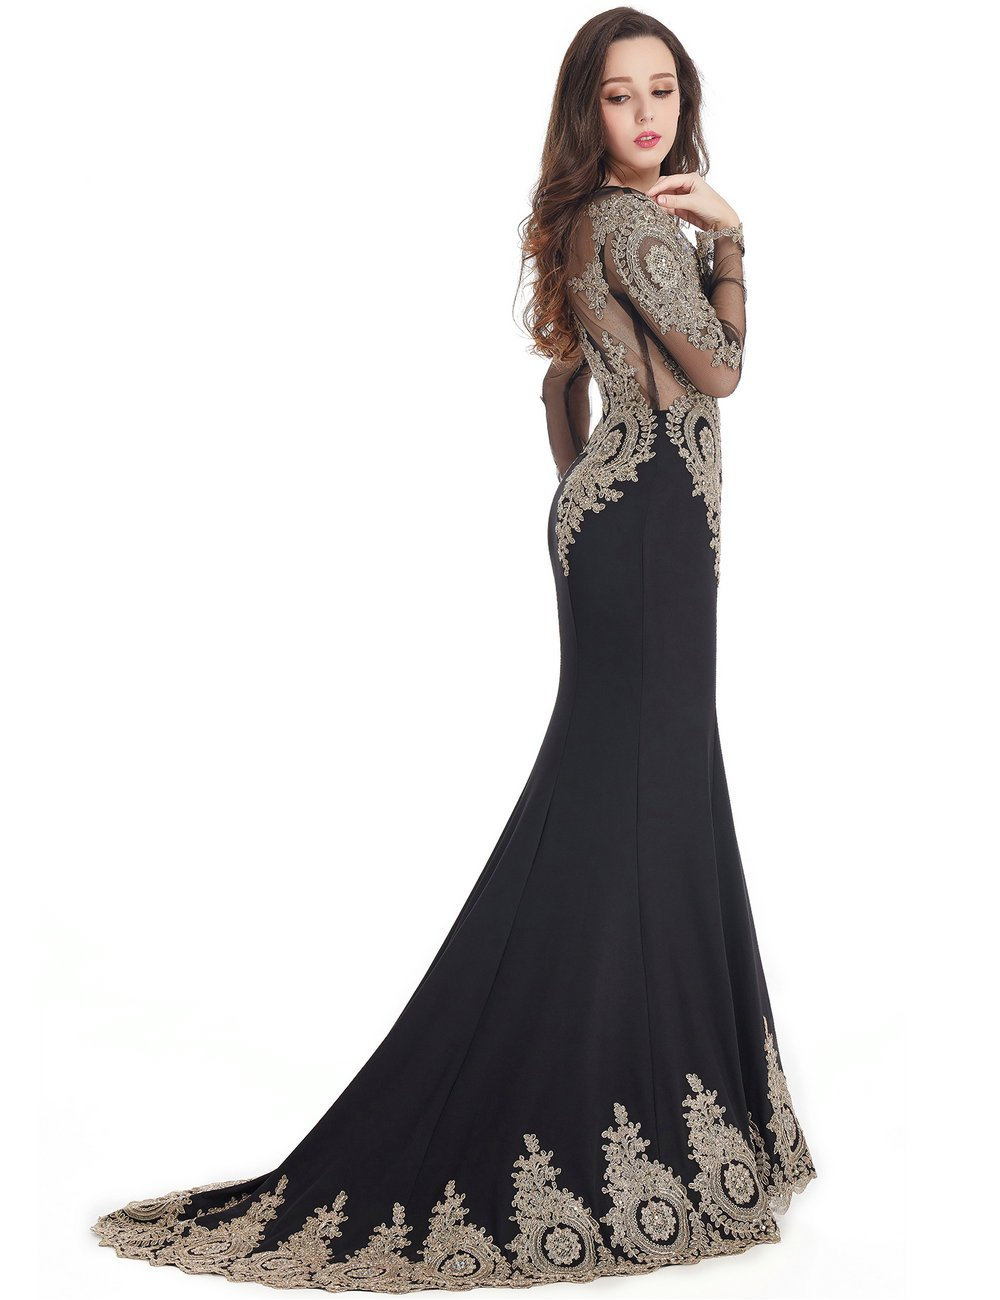 MisShow Black Mermaid Evening Dress for Women Formal Long Prom Dress 2017 by MisShow (Image #2)